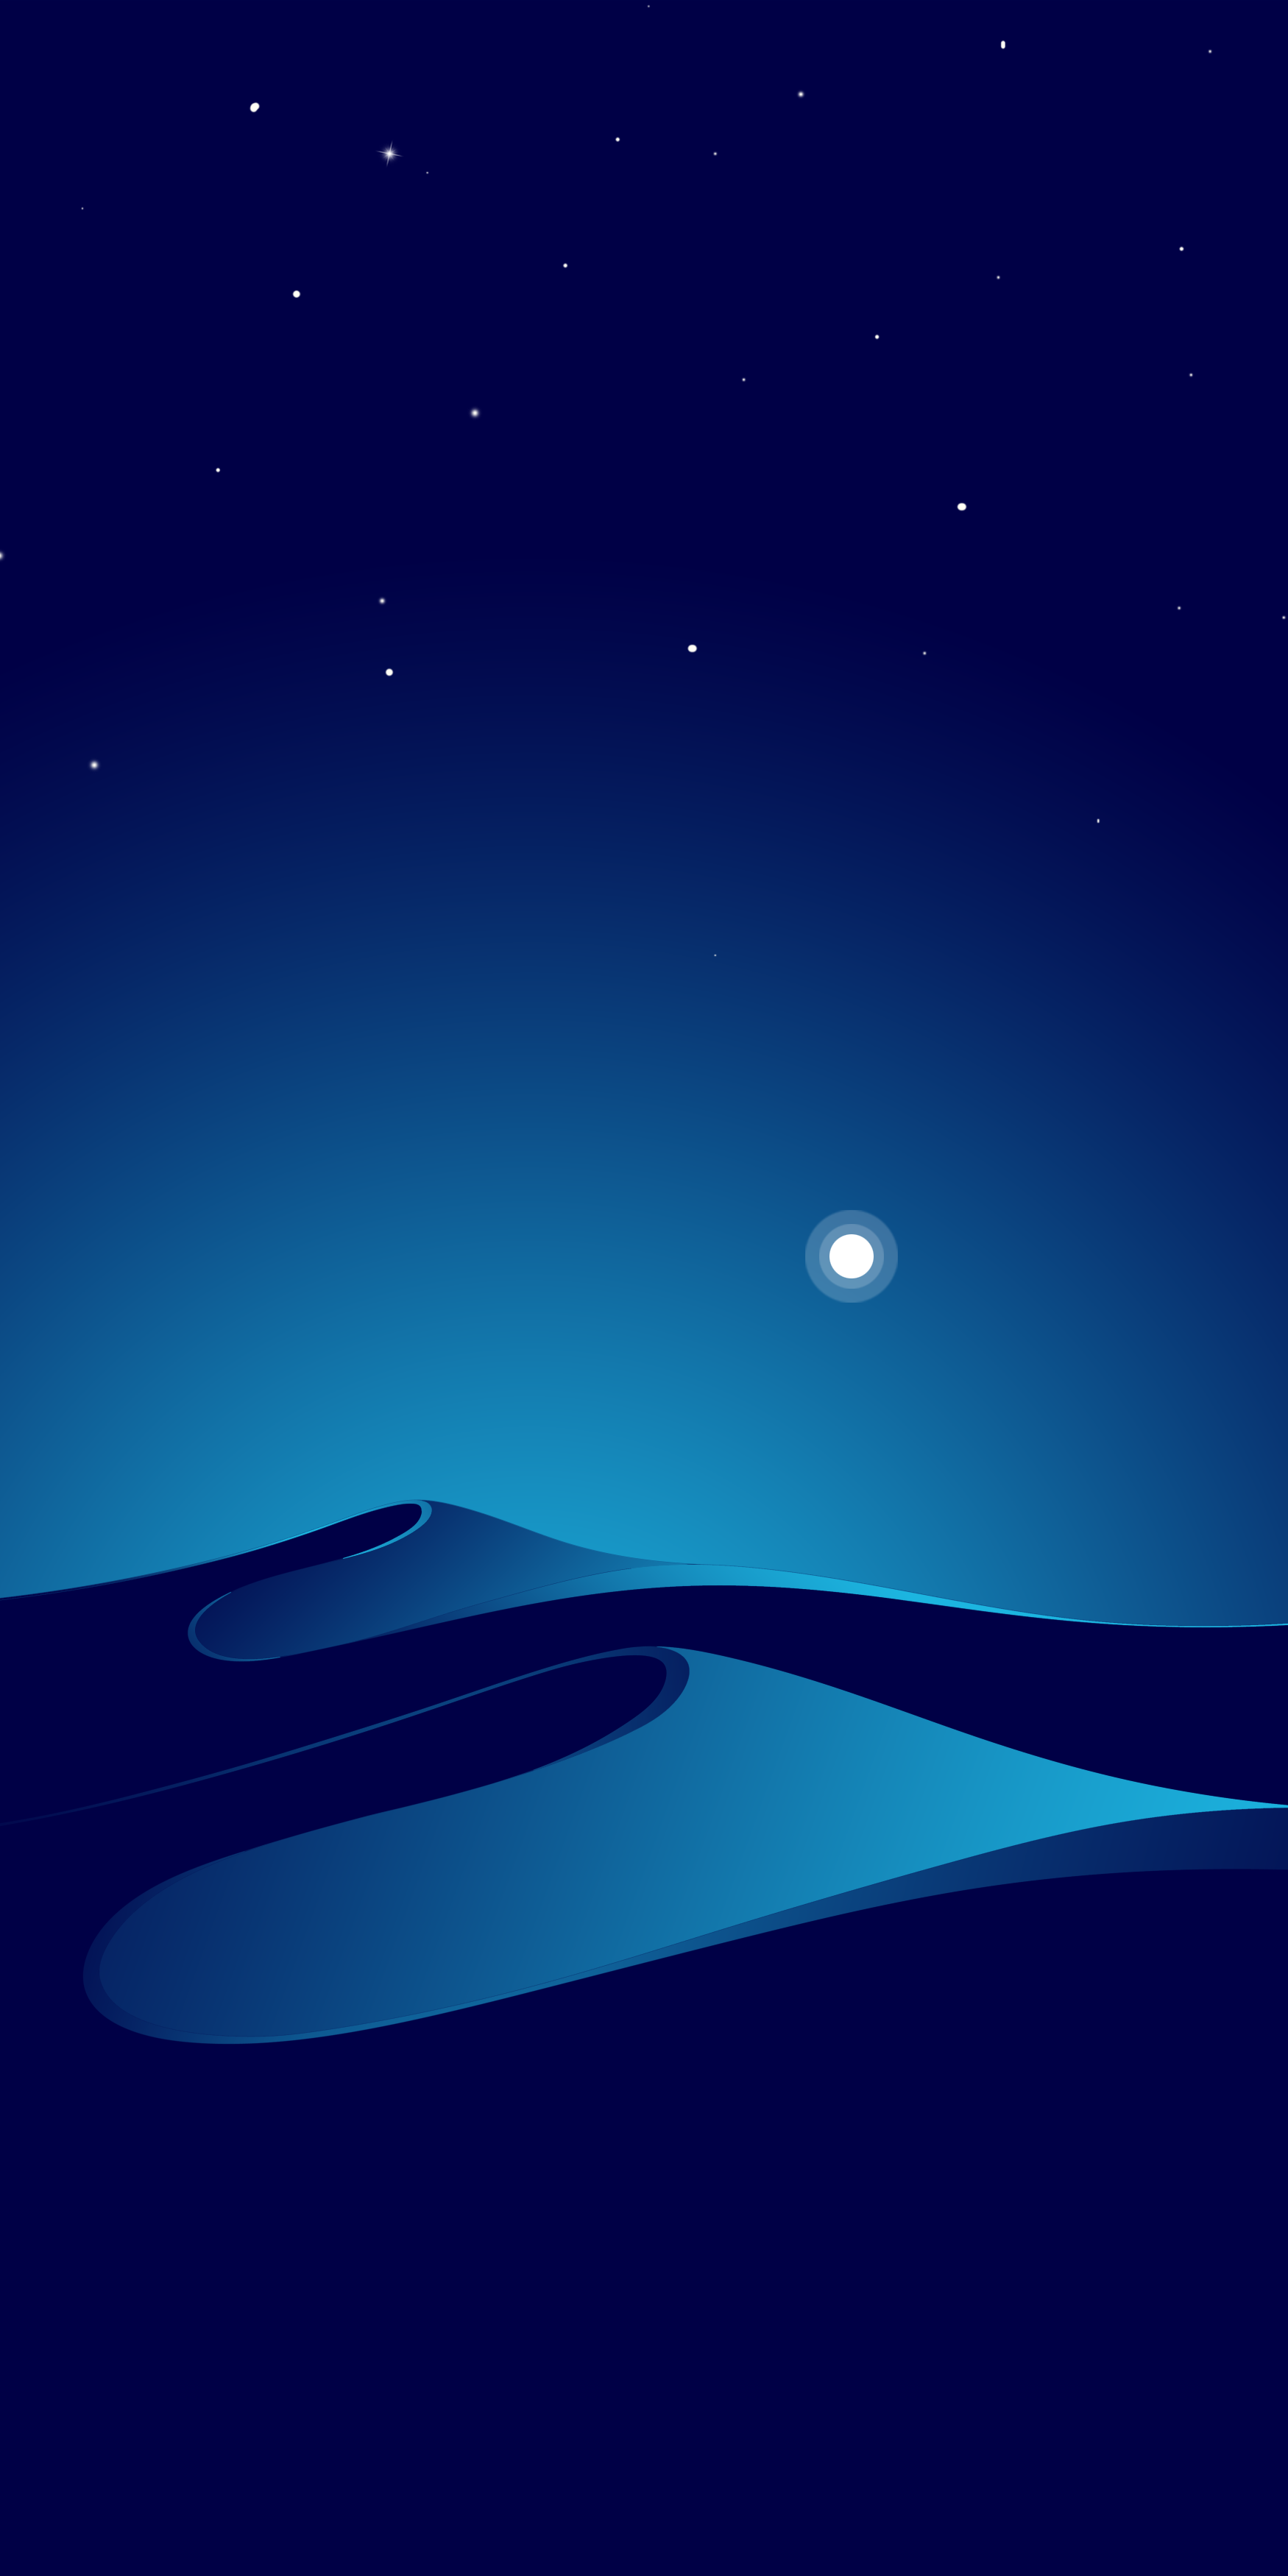 99] Punch Hole Wallpapers for Samsung Galaxy S20 S20 Ultra in 1750x3500